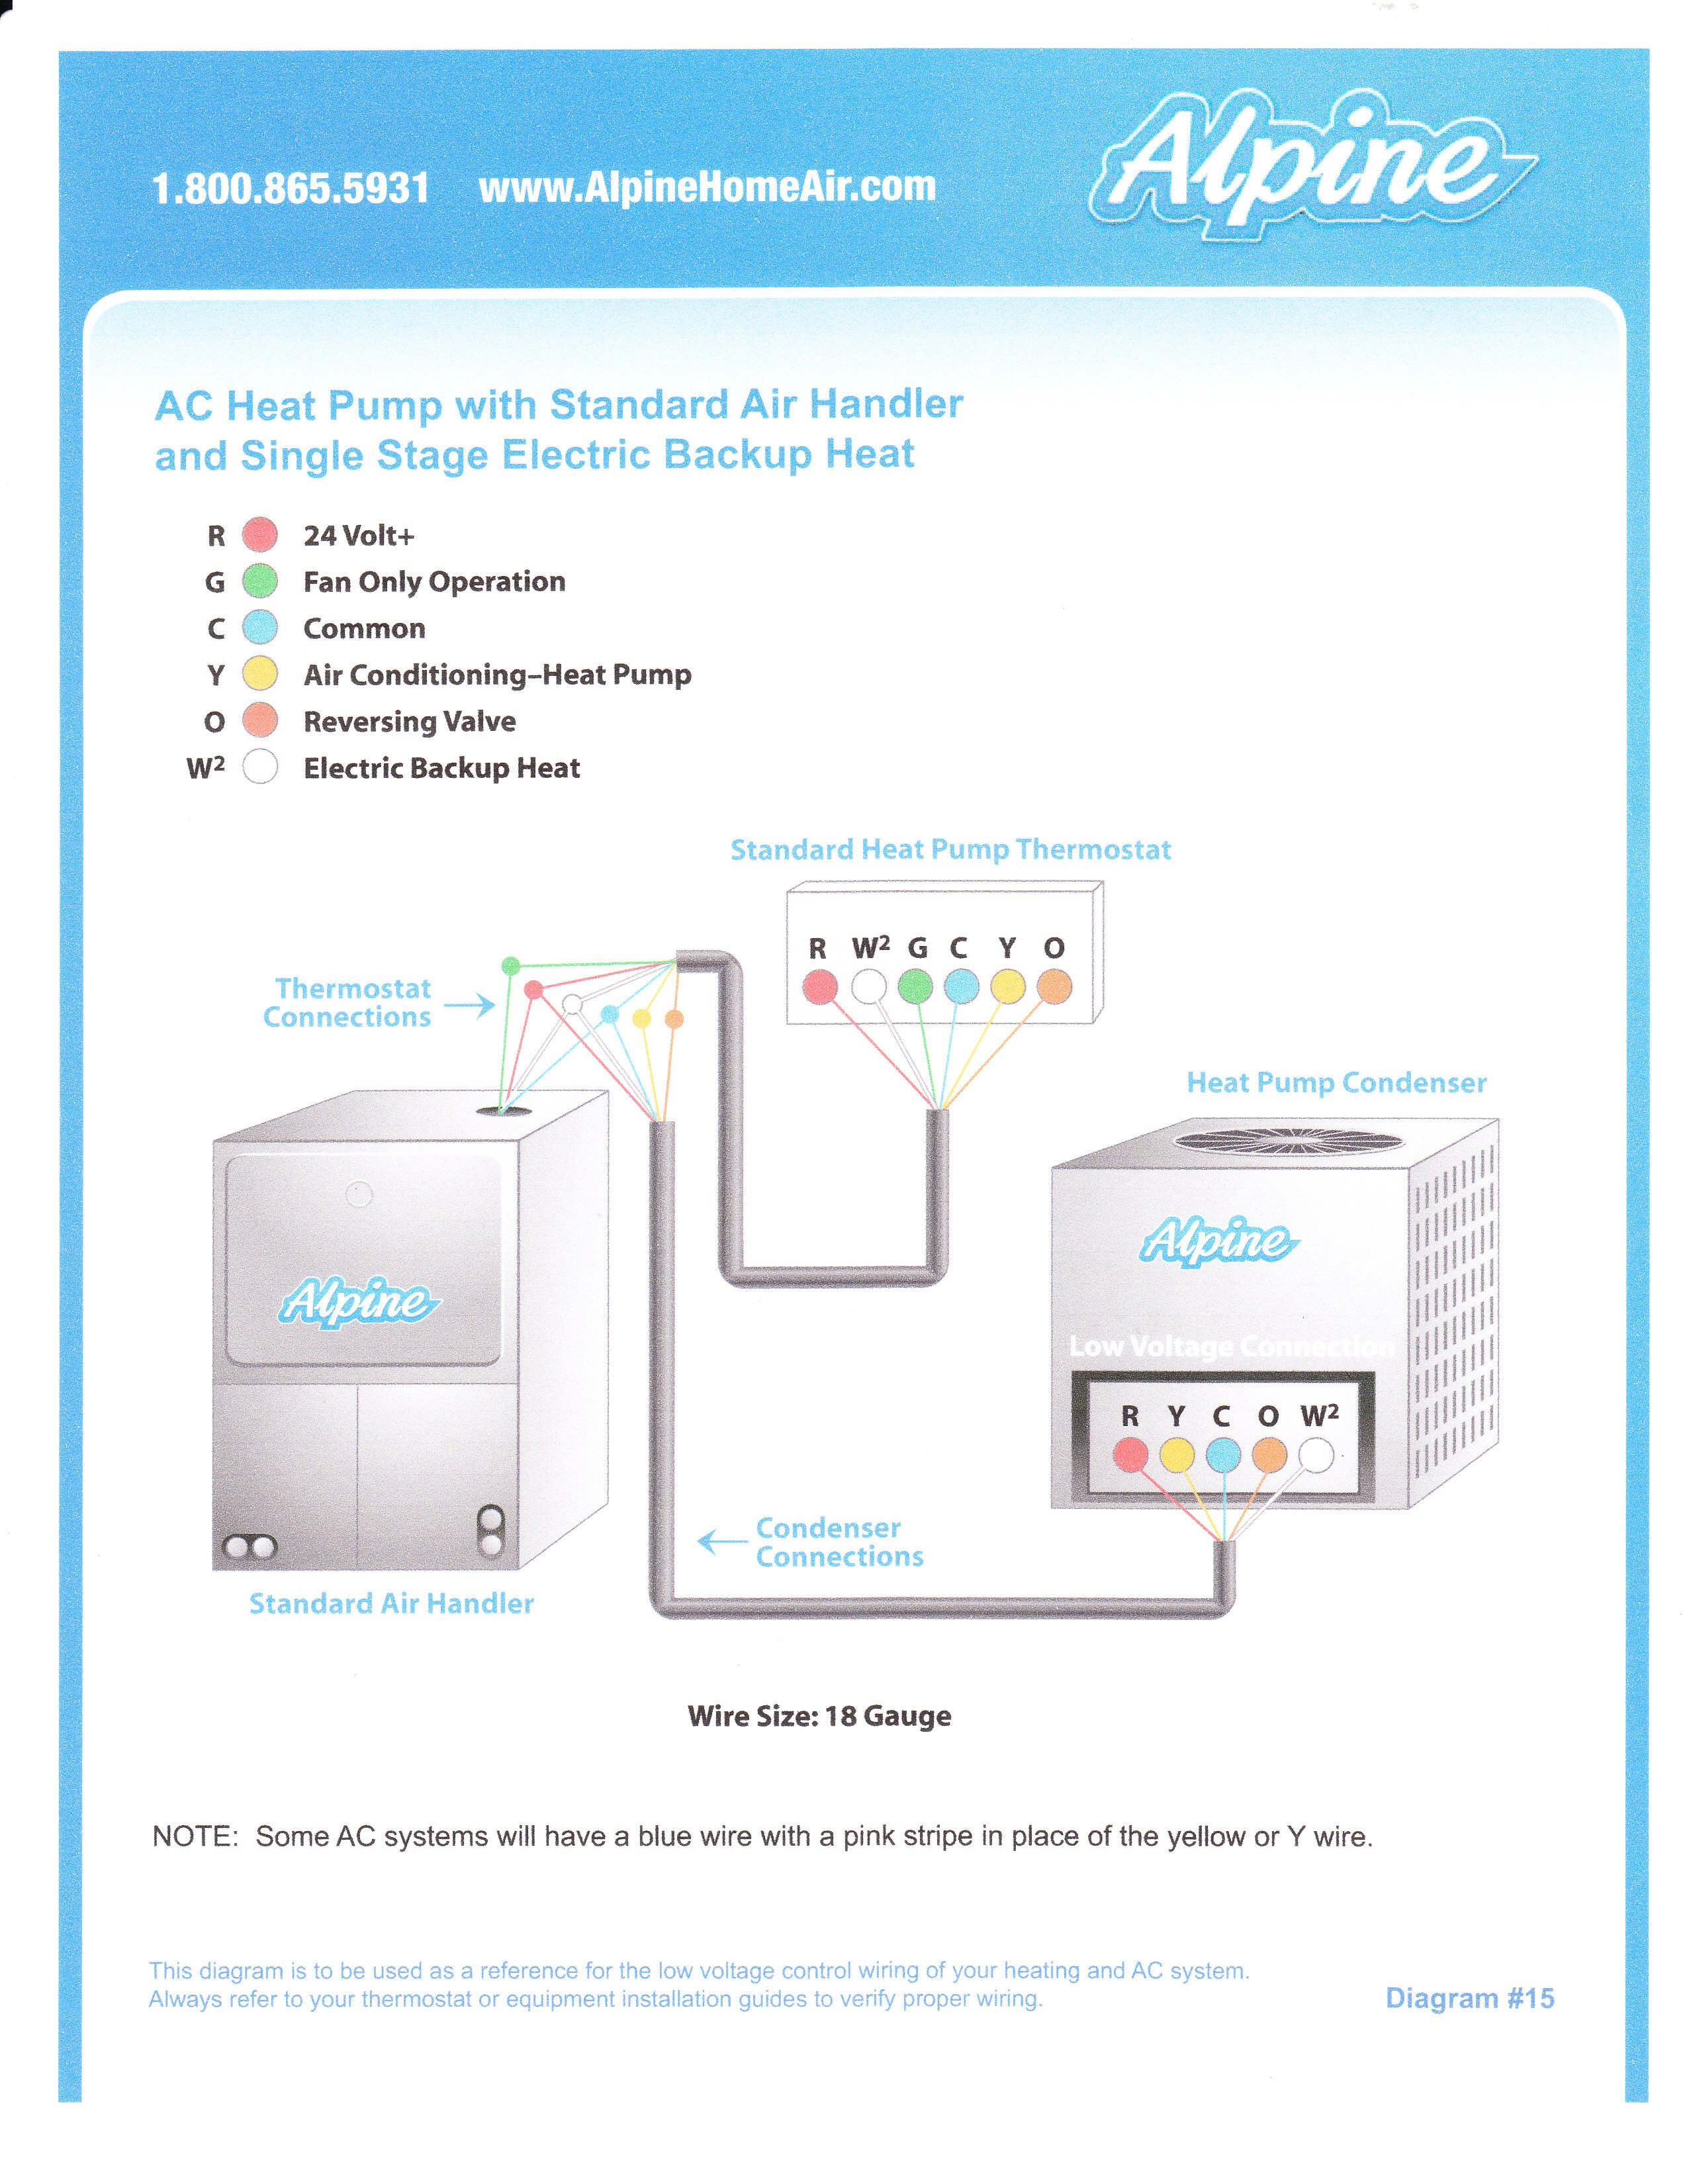 Fantastic honeywell thermostat wiring diagram for heat pump image 2 stage heat pump thermostat wiring diagram wiring diagram database cheapraybanclubmaster Gallery